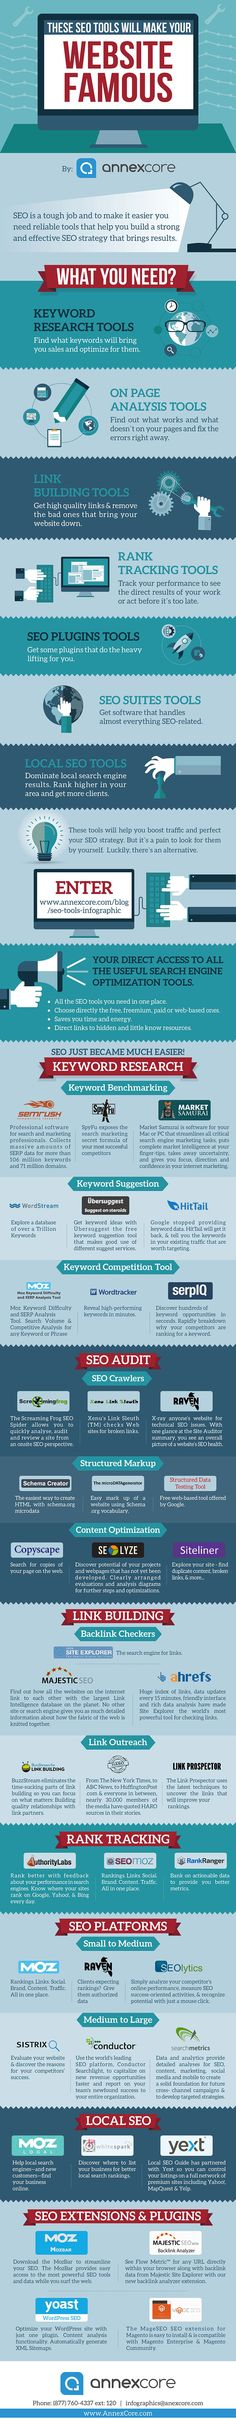 These #SEO Tools Will Make Your Website Famous - #Infographic